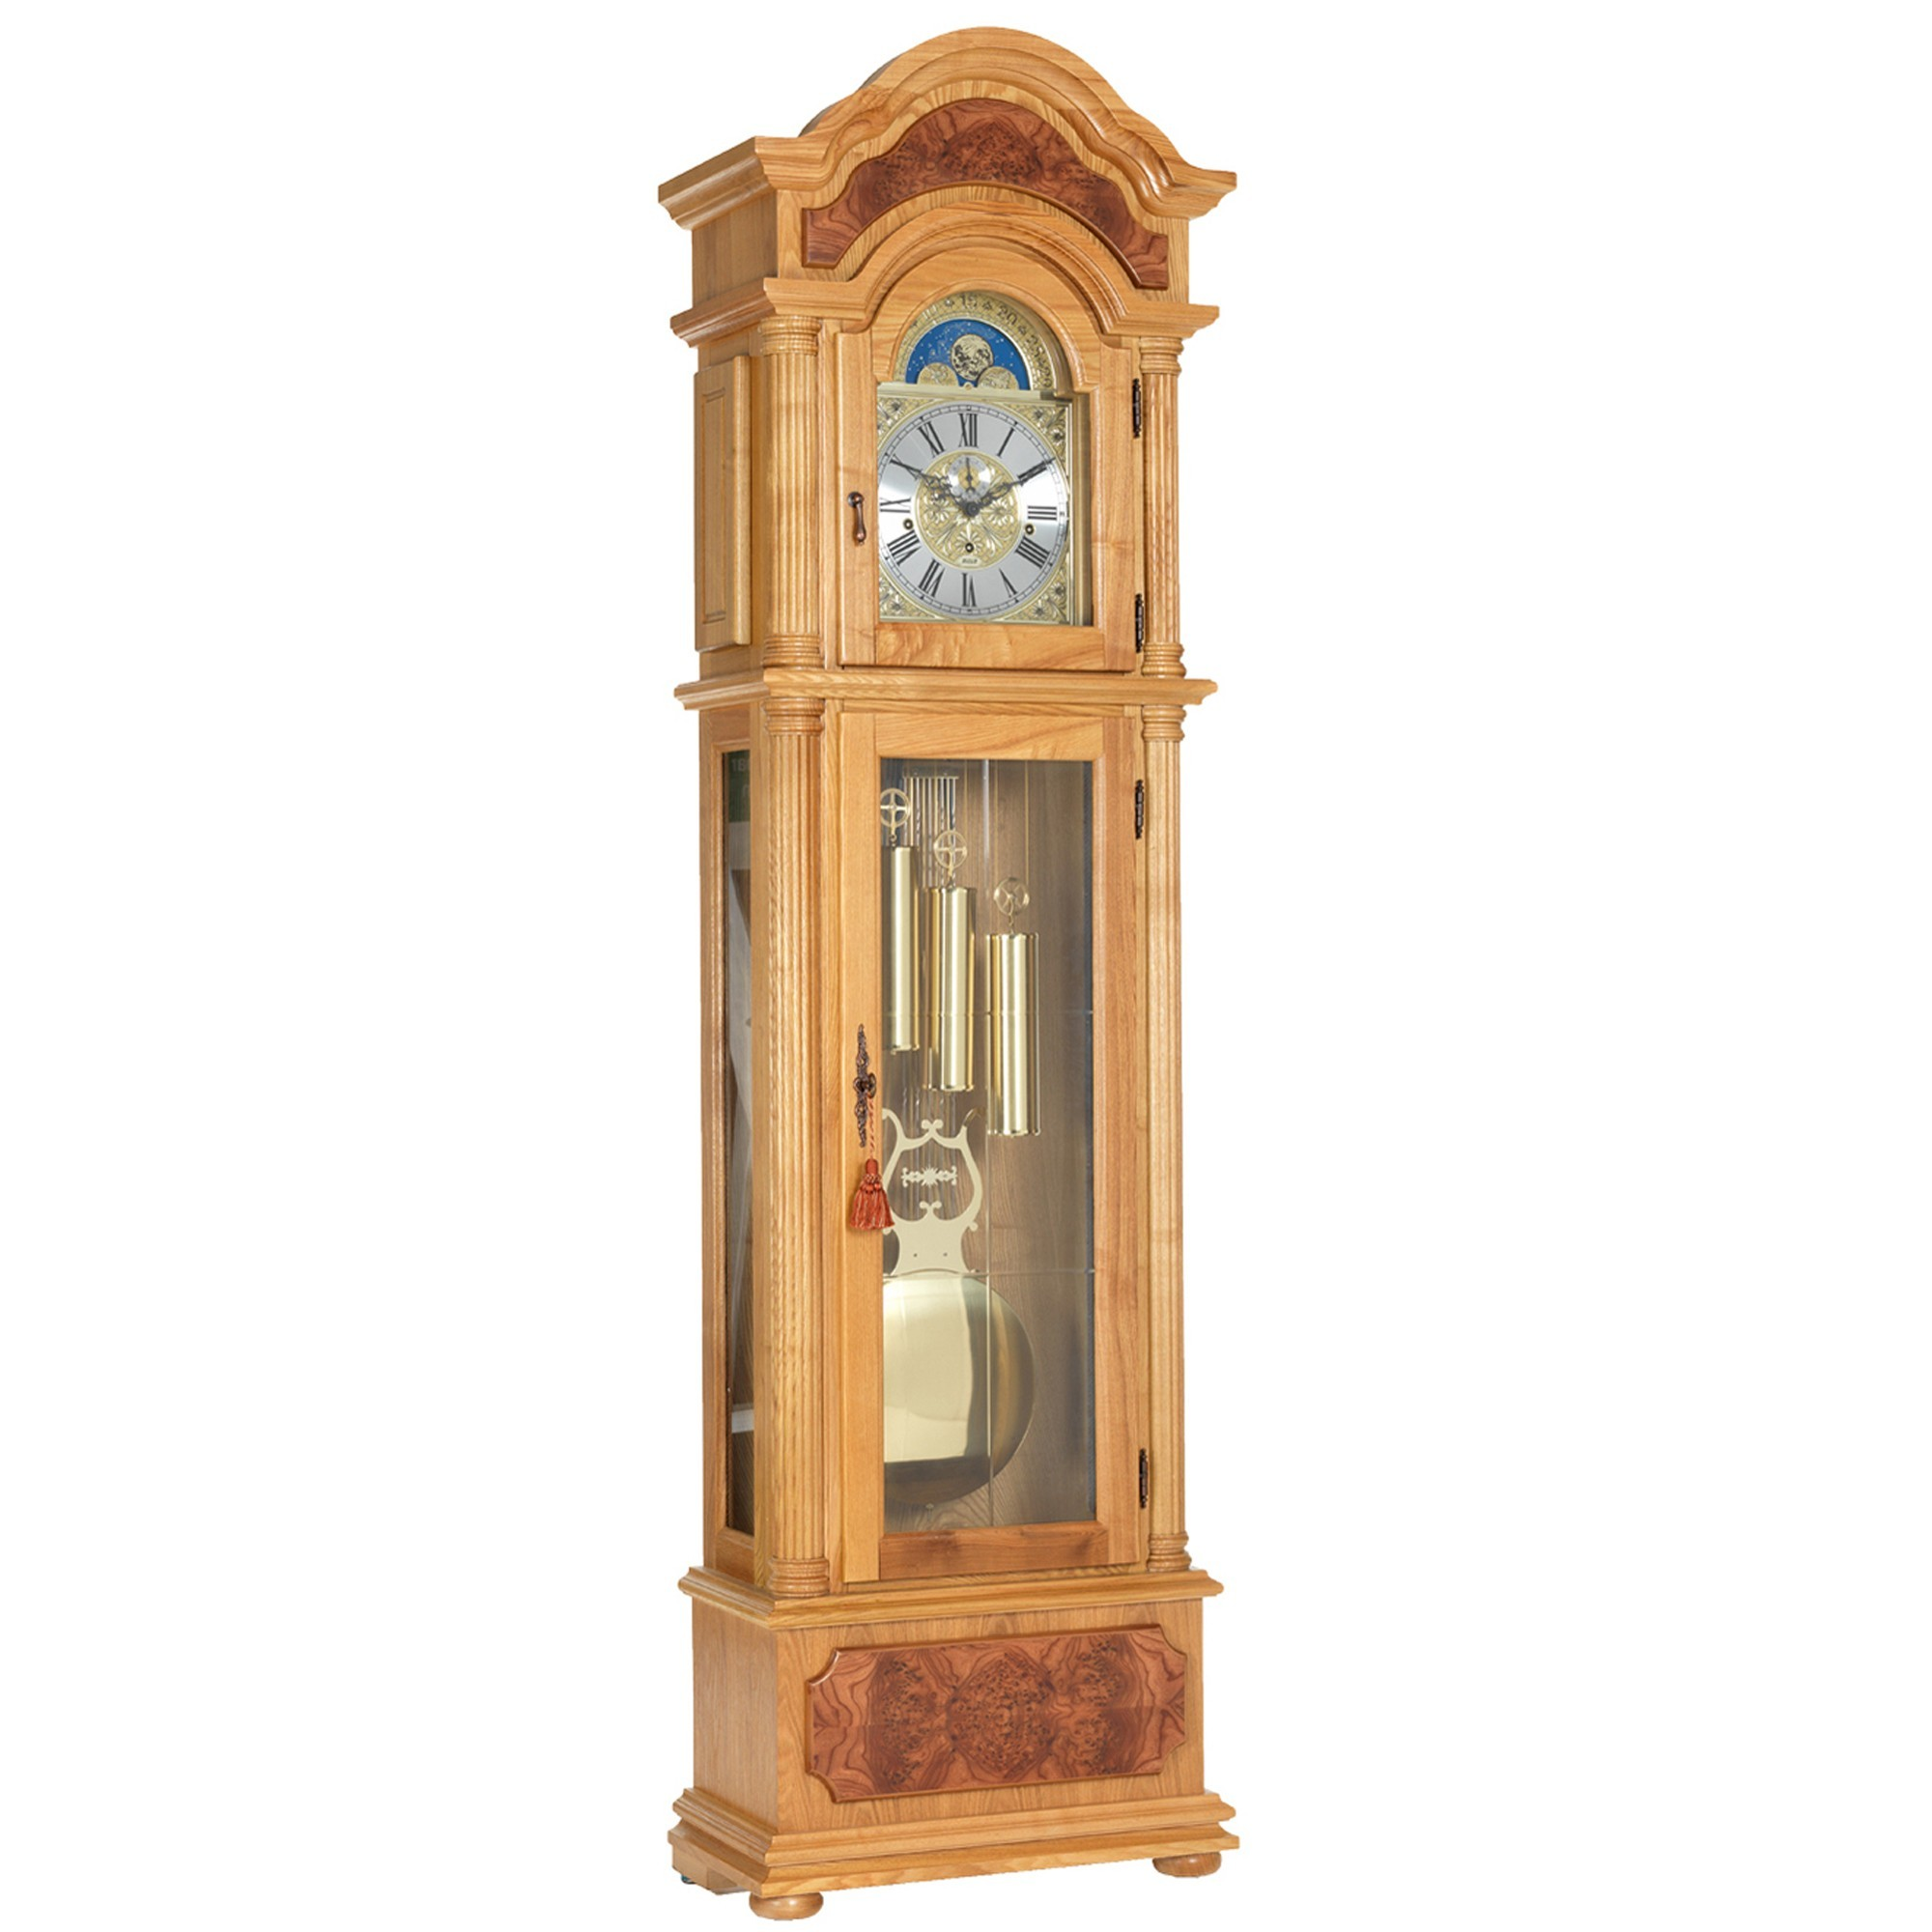 light oak triple chime grandfather clock grandfather clocks cookes furniture. Black Bedroom Furniture Sets. Home Design Ideas